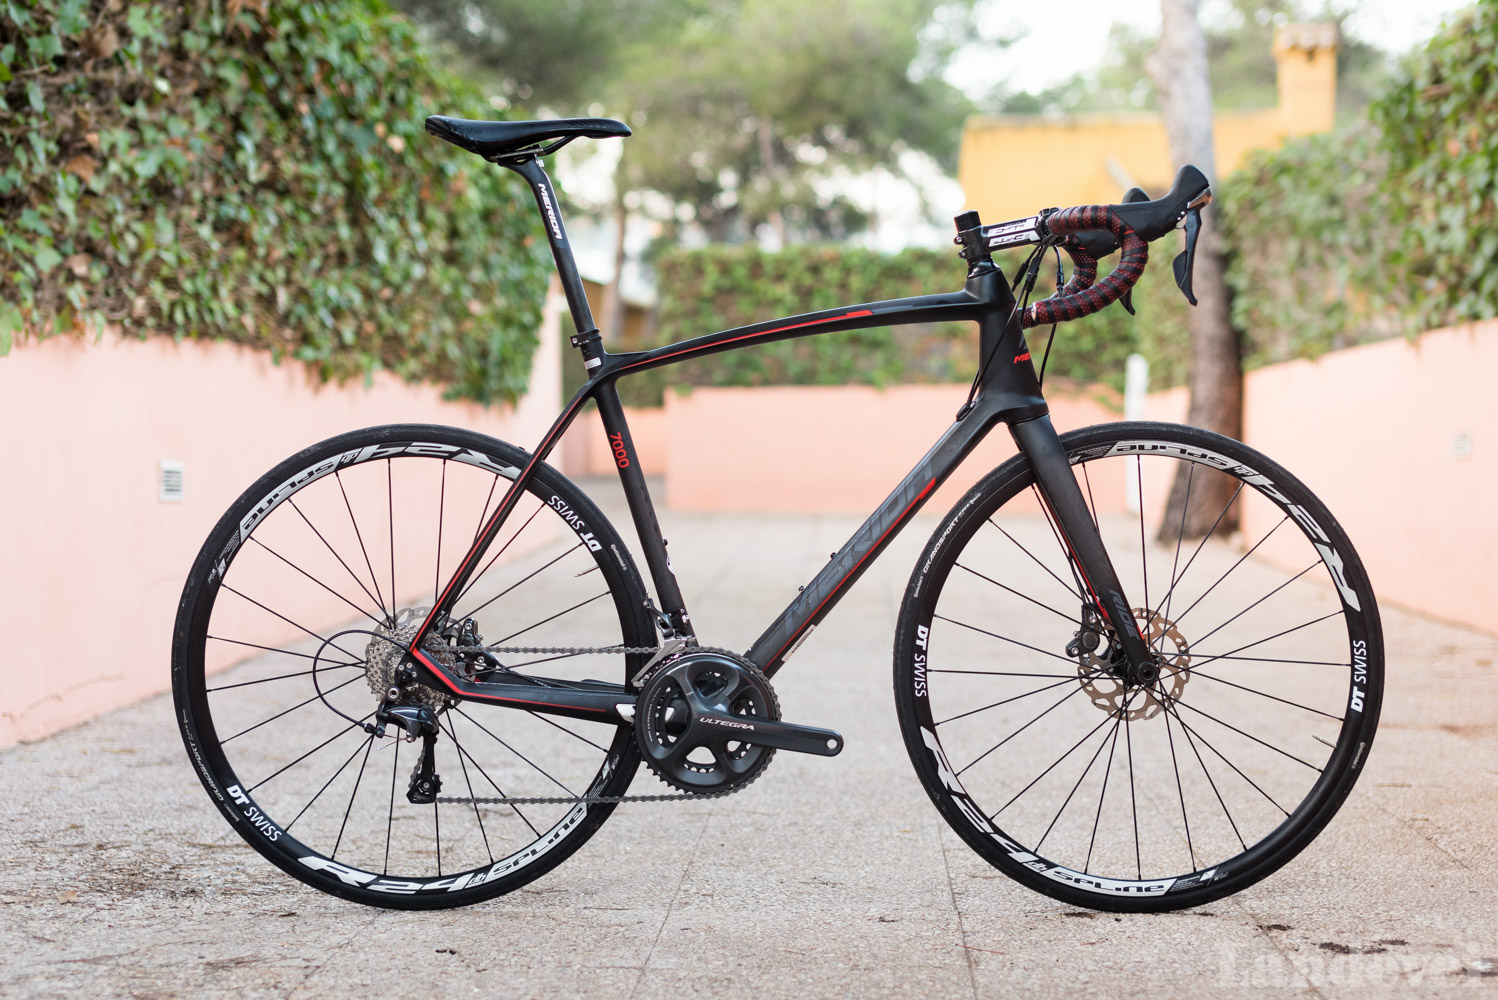 TEST: MERIDA RIDE DISC CF700